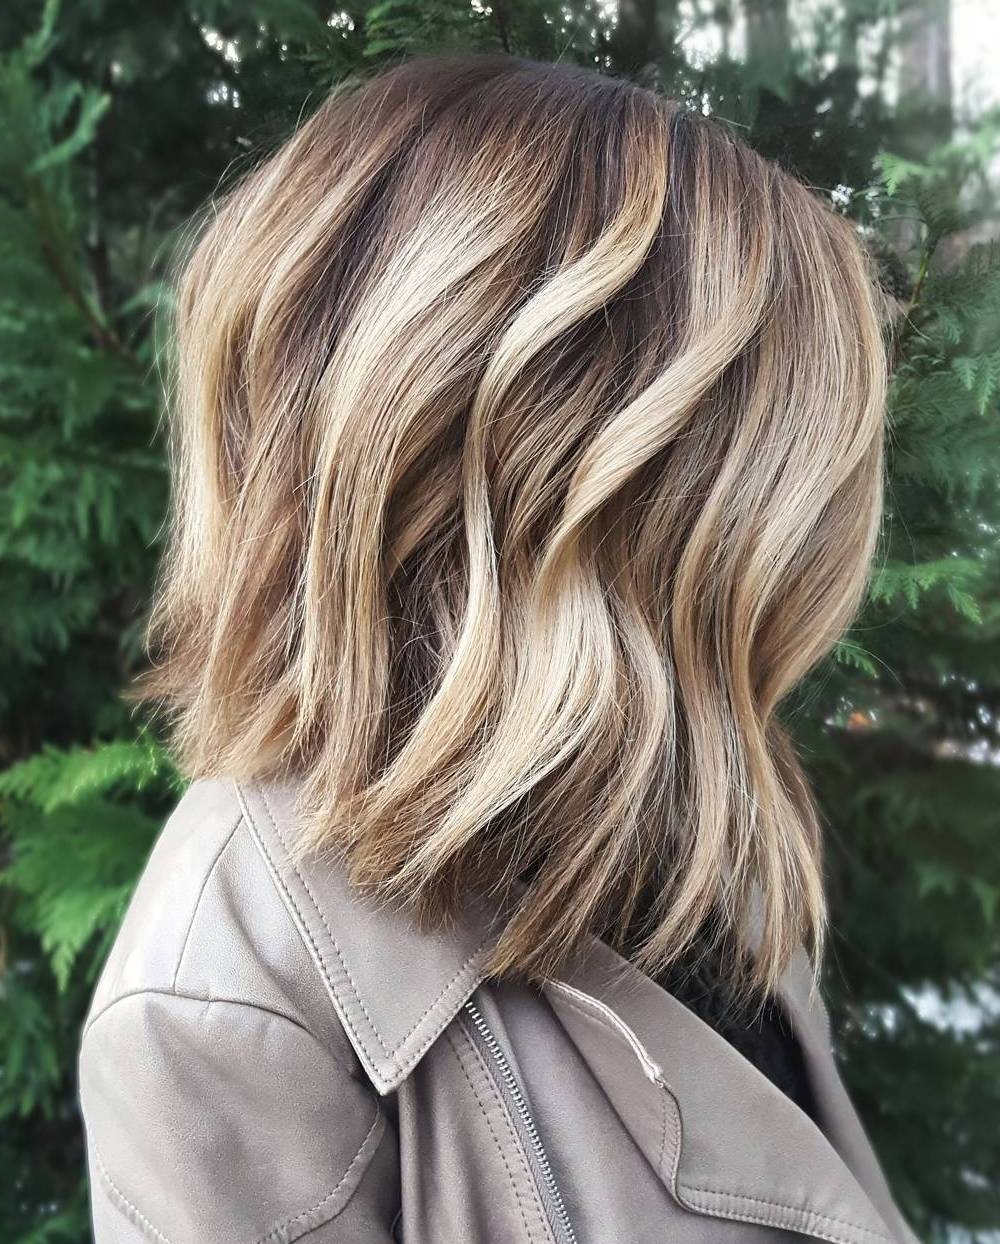 20 Dirty Blonde Hair Ideas That Work On Everyone Intended For Angled Ash Blonde Haircuts (View 5 of 20)